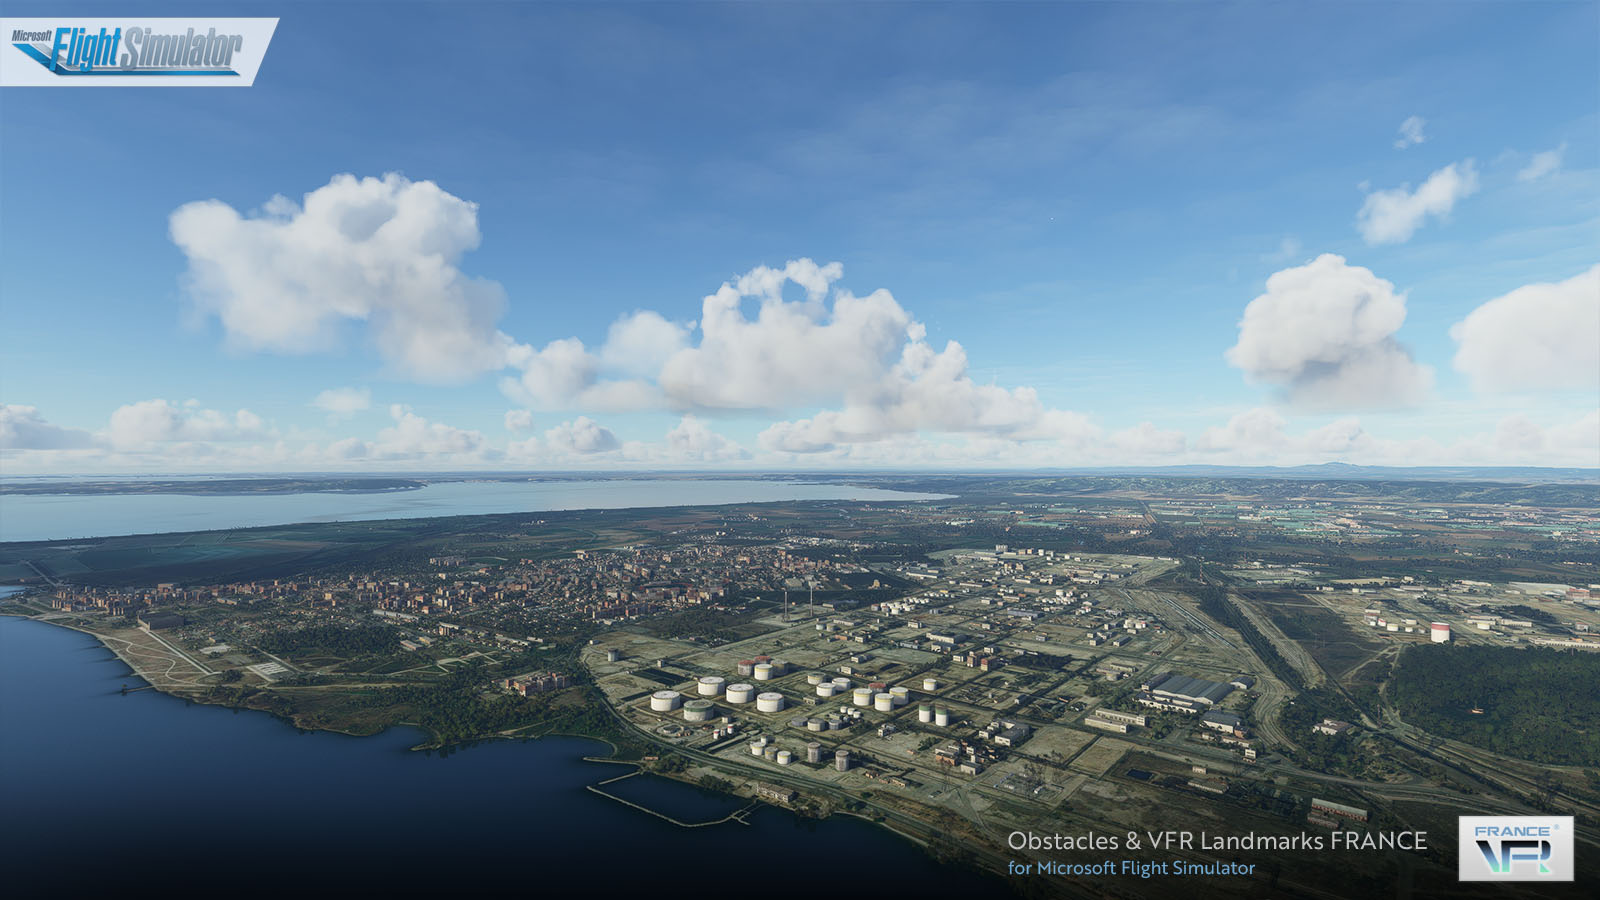 FRANCE VFR - OBSTACLES & REPERES VFR FRANCE V4 MSFS